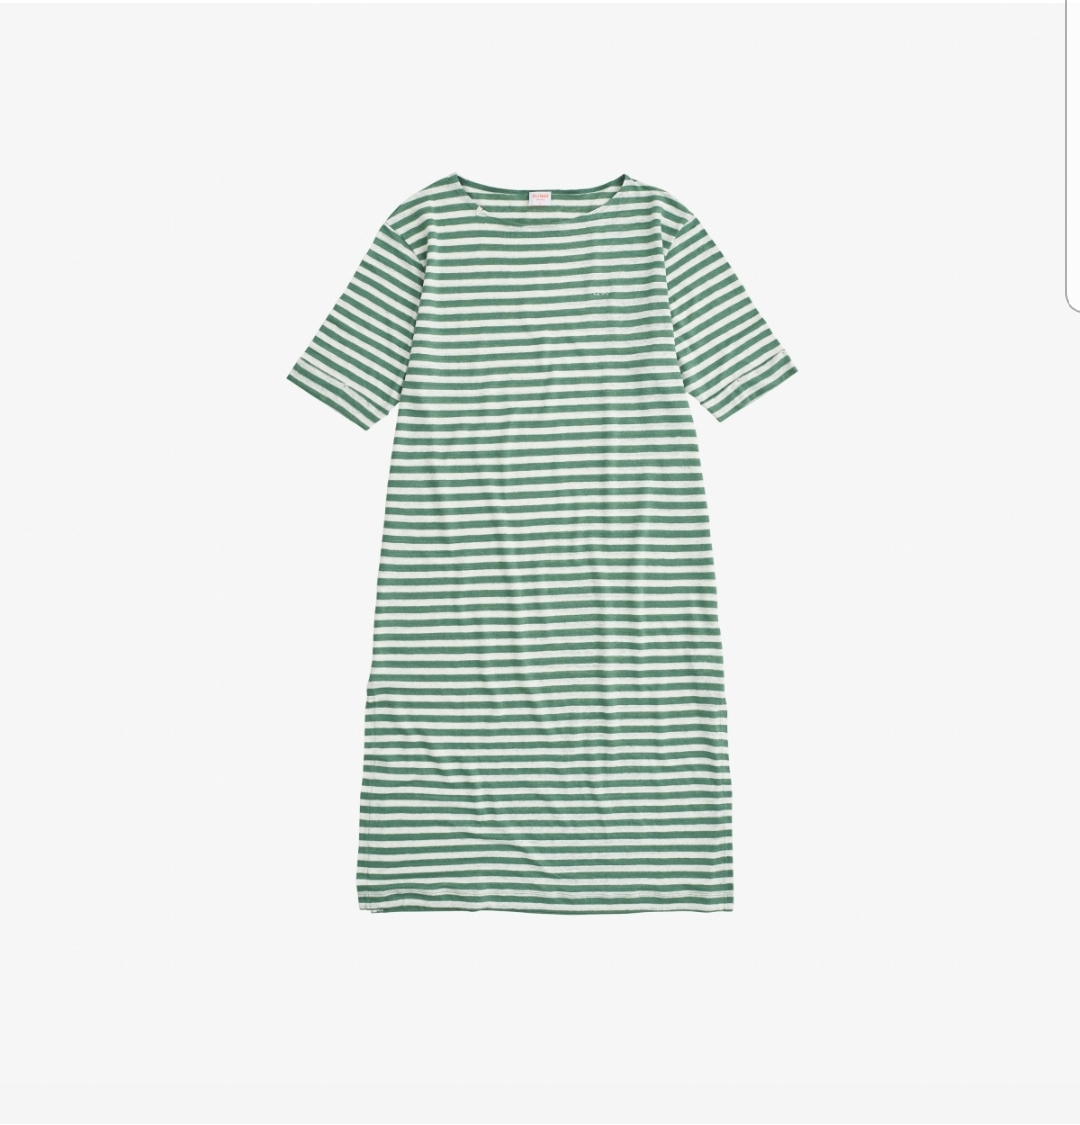 SUN68 DRESS LINEN STRIPES VERDE SALVIA/BIANCO PANNA